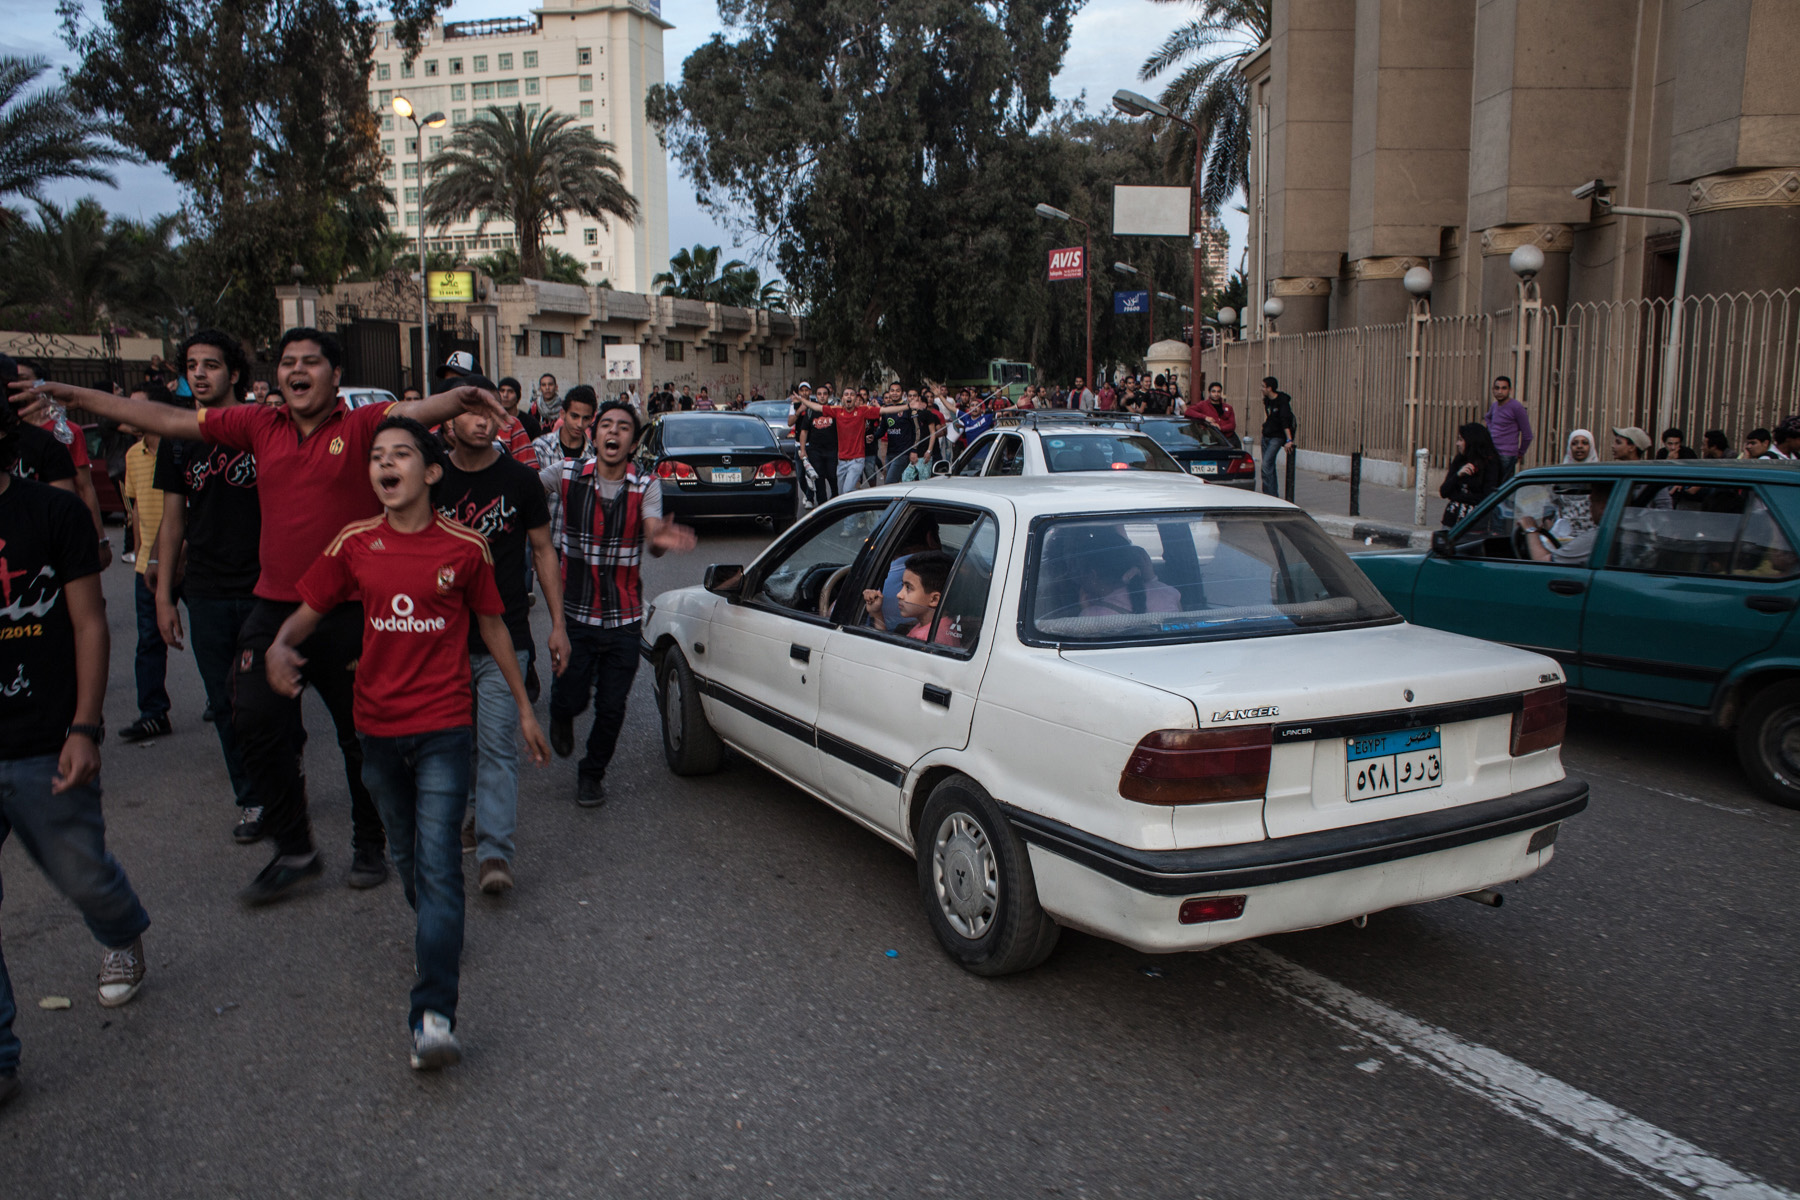 Ultras protesting next to the Ahly club centre in Zamalek/Cairo while a young boy is watching them out of his parents car